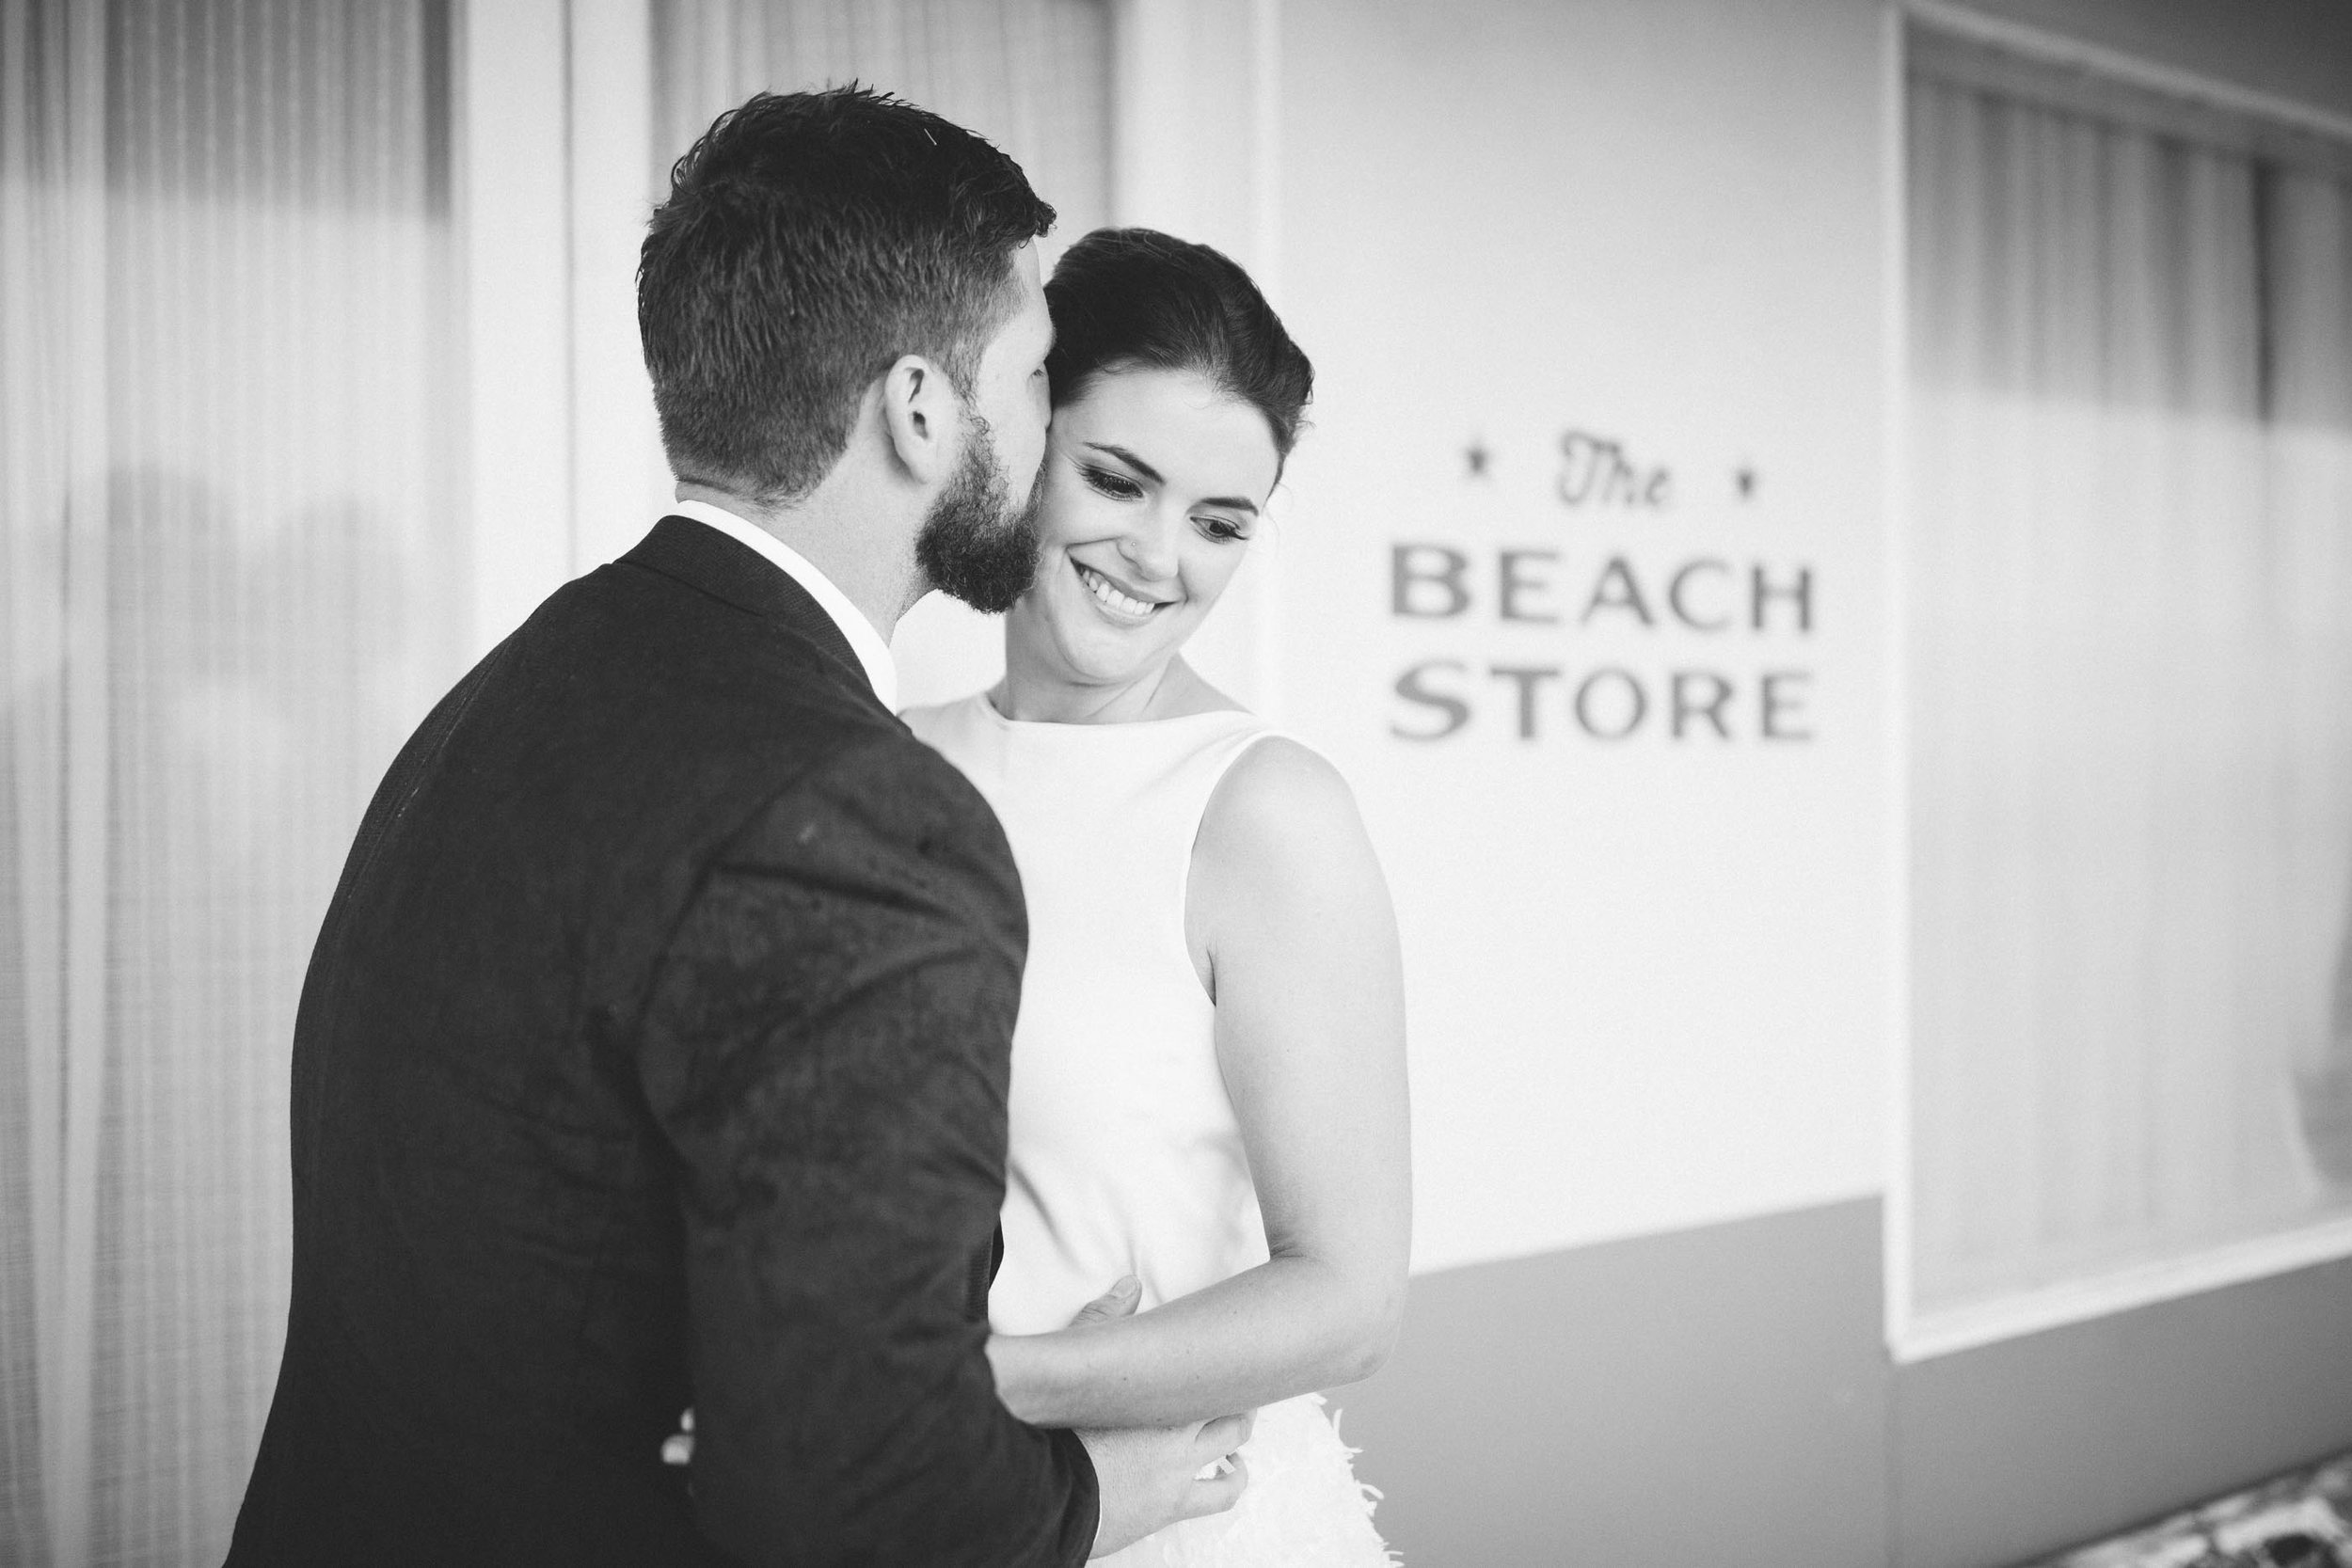 Kapiti-Wedding-Photography-93.jpg